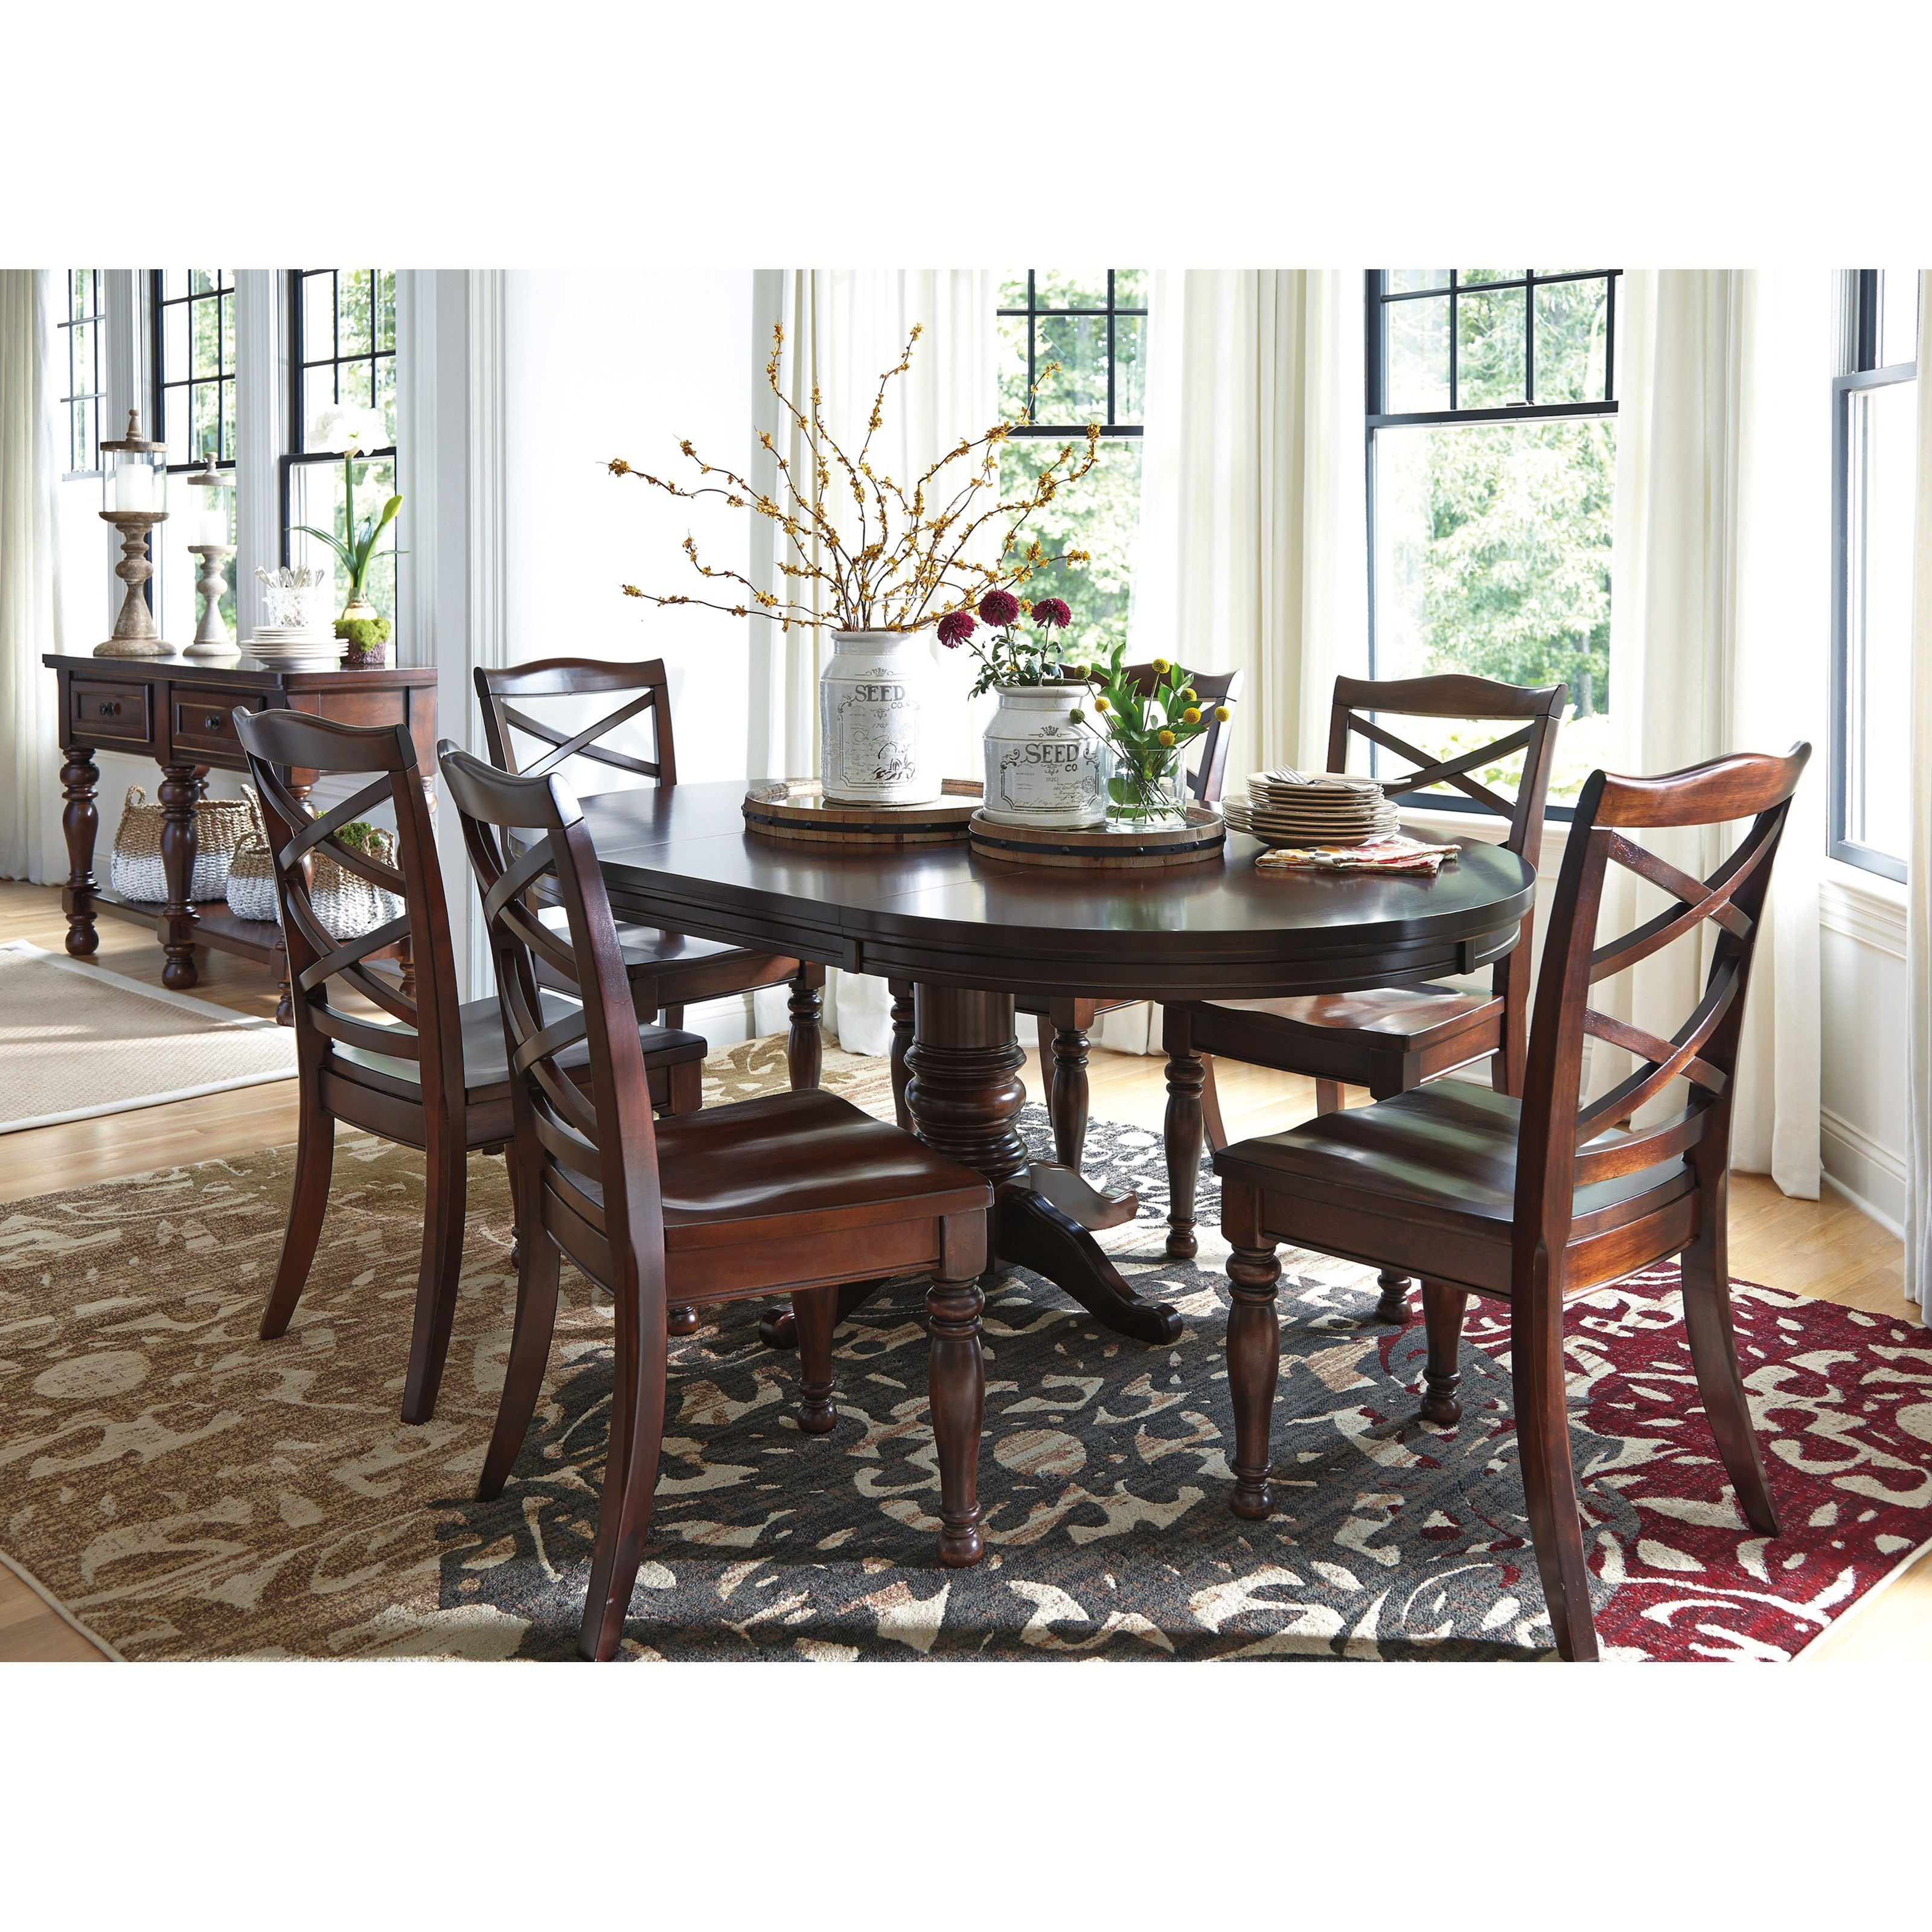 Ashley Furniture Porter 7 Piece Round Dining Table Set  : products2Fashleyfurniture2Fcolor2Fporterd697 50b2B50t2B6x01 b5 from www.olindes.com size 3200 x 3200 jpeg 1750kB